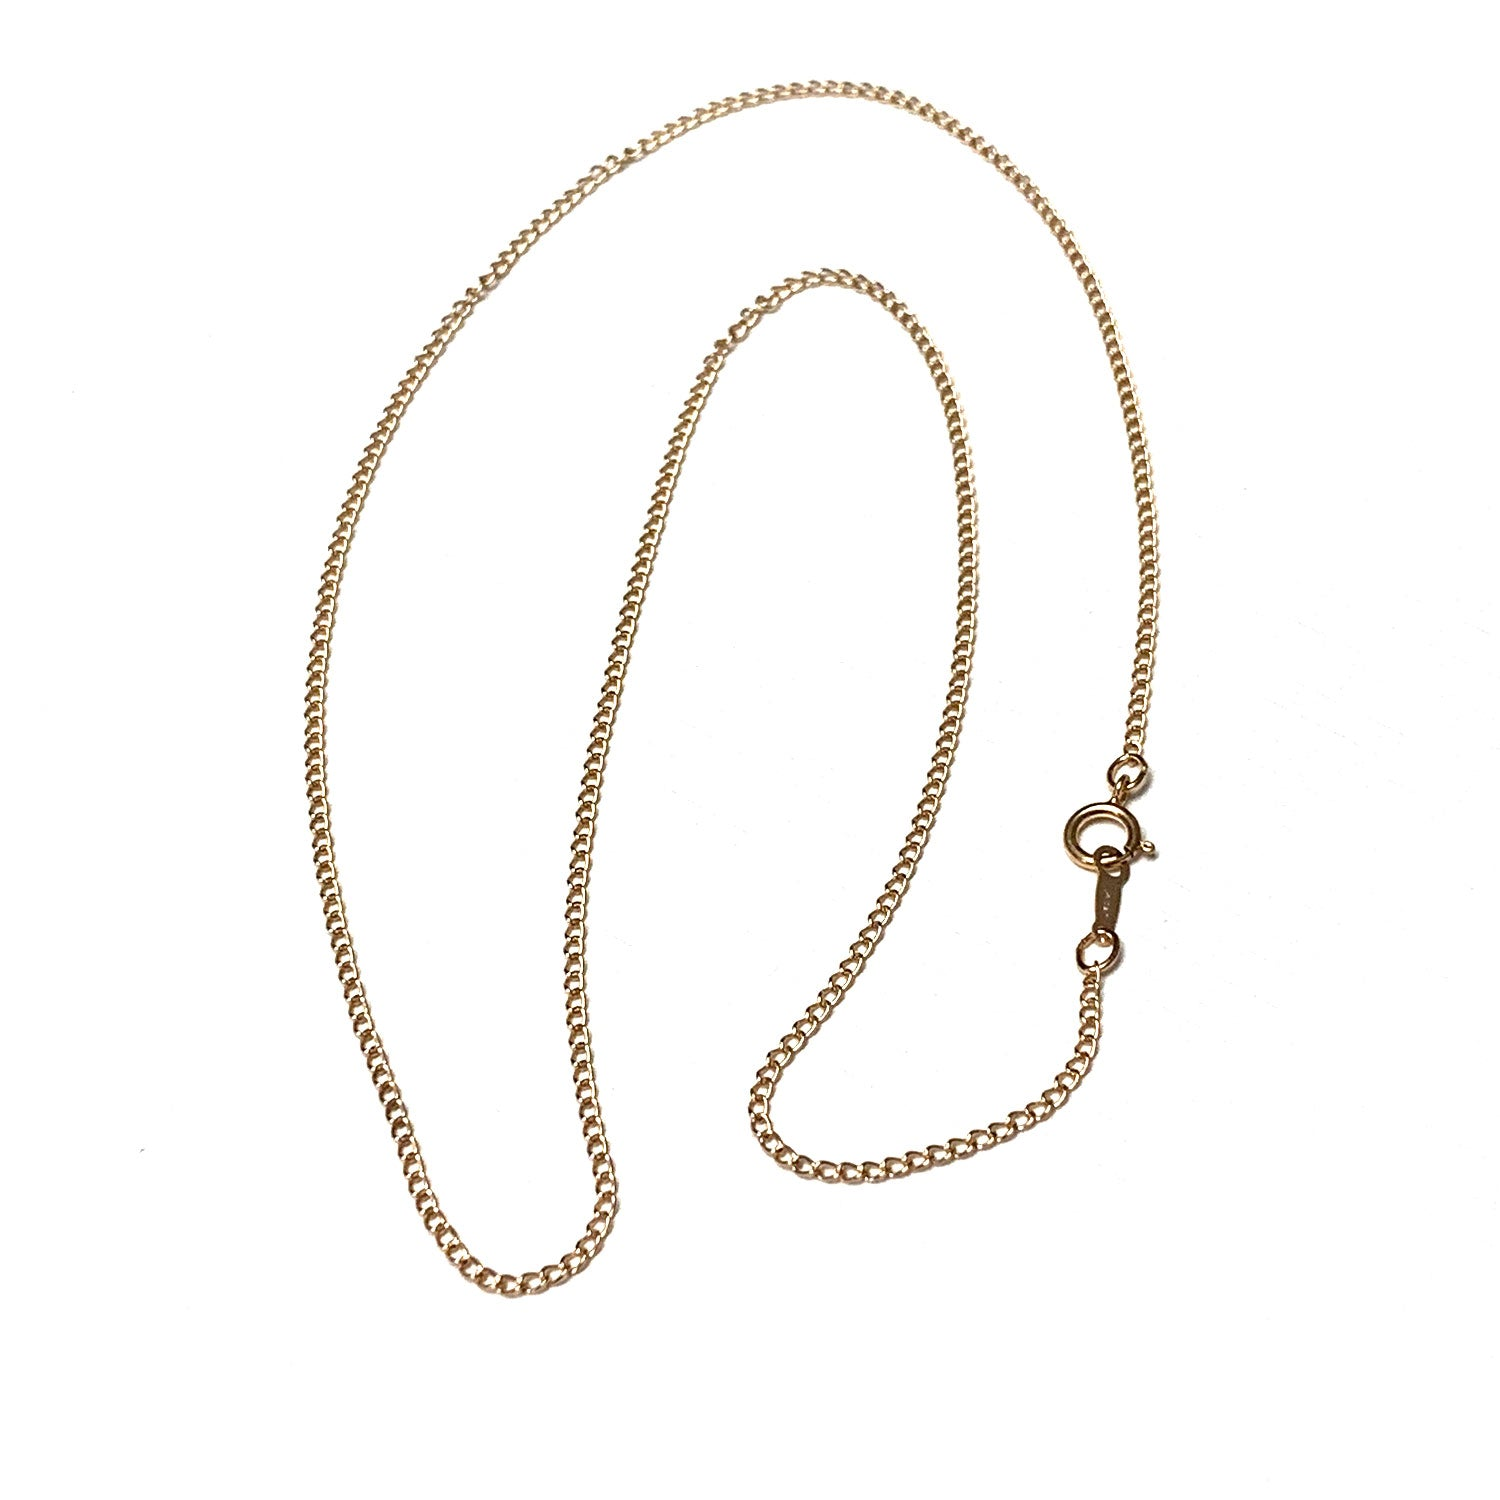 ROSE GOLD FILLED CURB CHAIN NECKLACE 18 INCHES